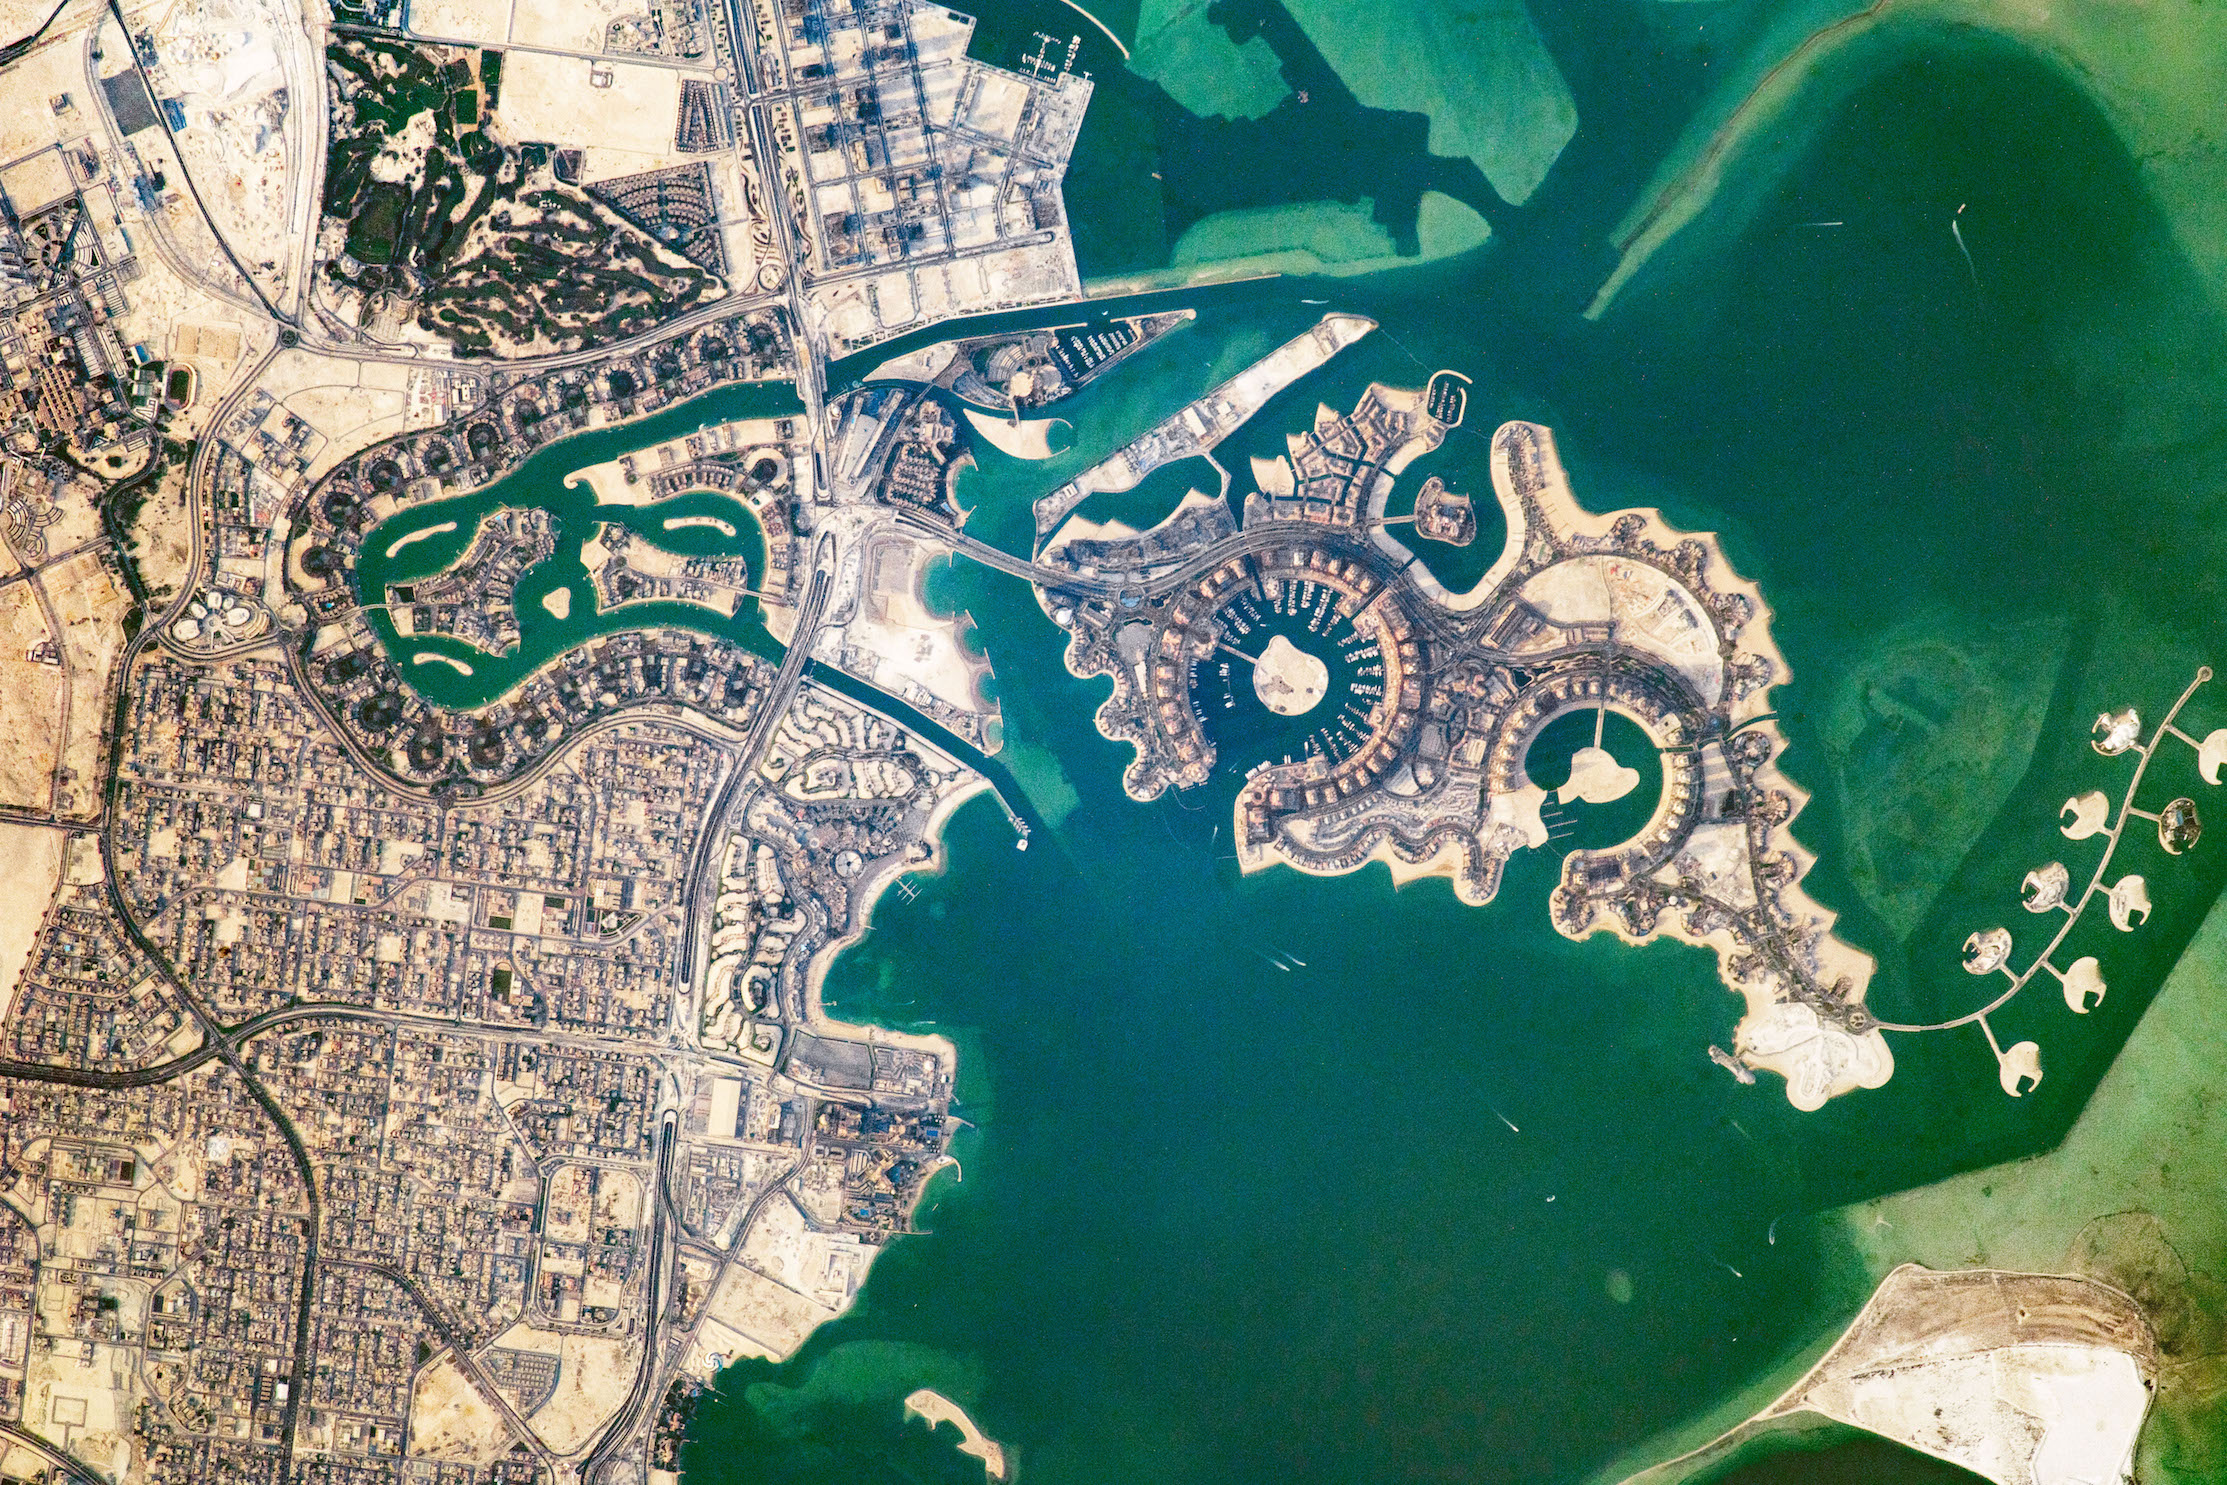 Today's Image of the Day comes from the NASA Earth Observatory and features a look at the Pearl-Qatar, a man-made island in Dohna, Qatar that extends into the Persian Gulf.